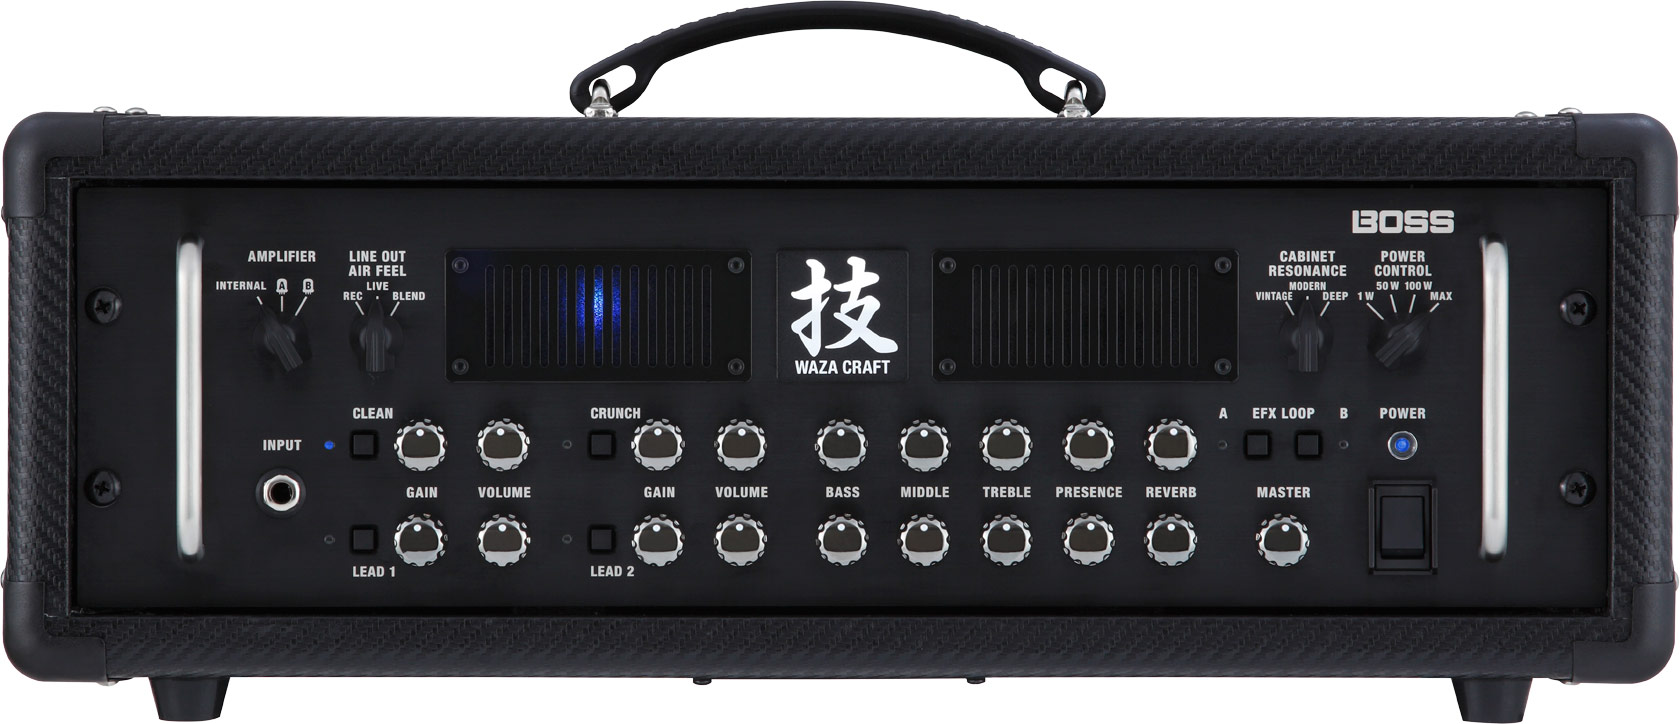 new boss waza guitar amp the gear page. Black Bedroom Furniture Sets. Home Design Ideas